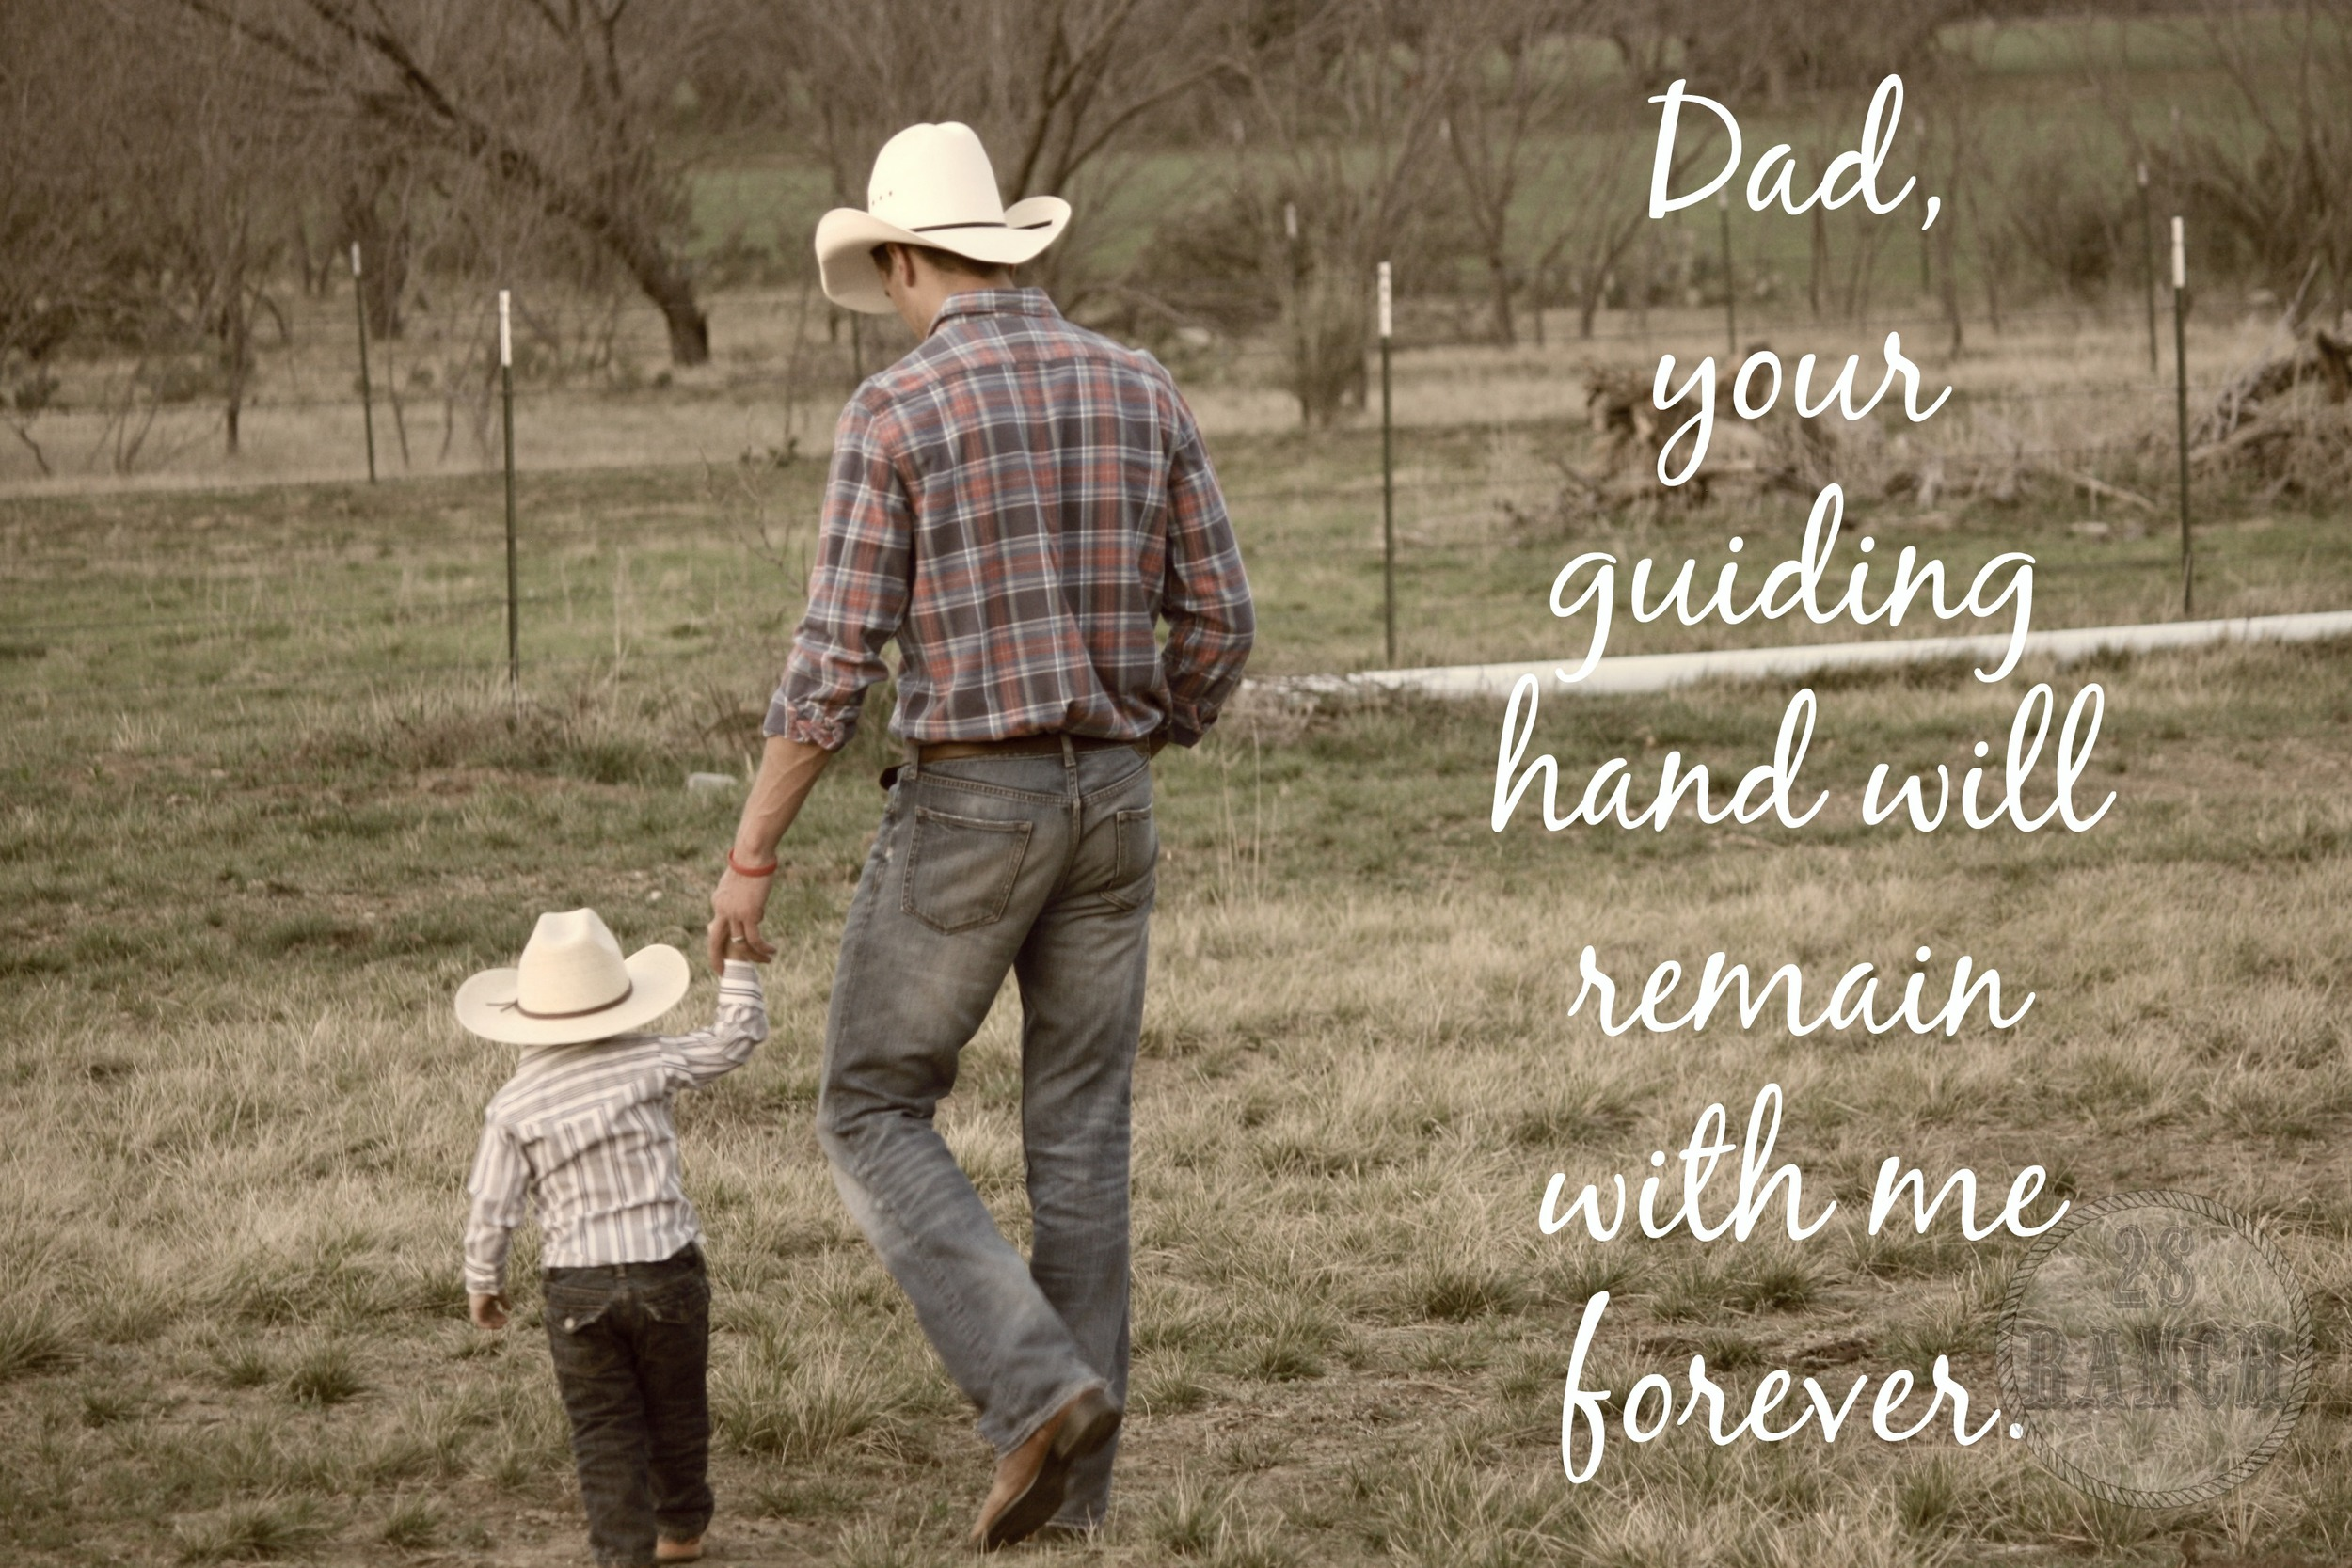 FathersDay Guiding Hand.jpg